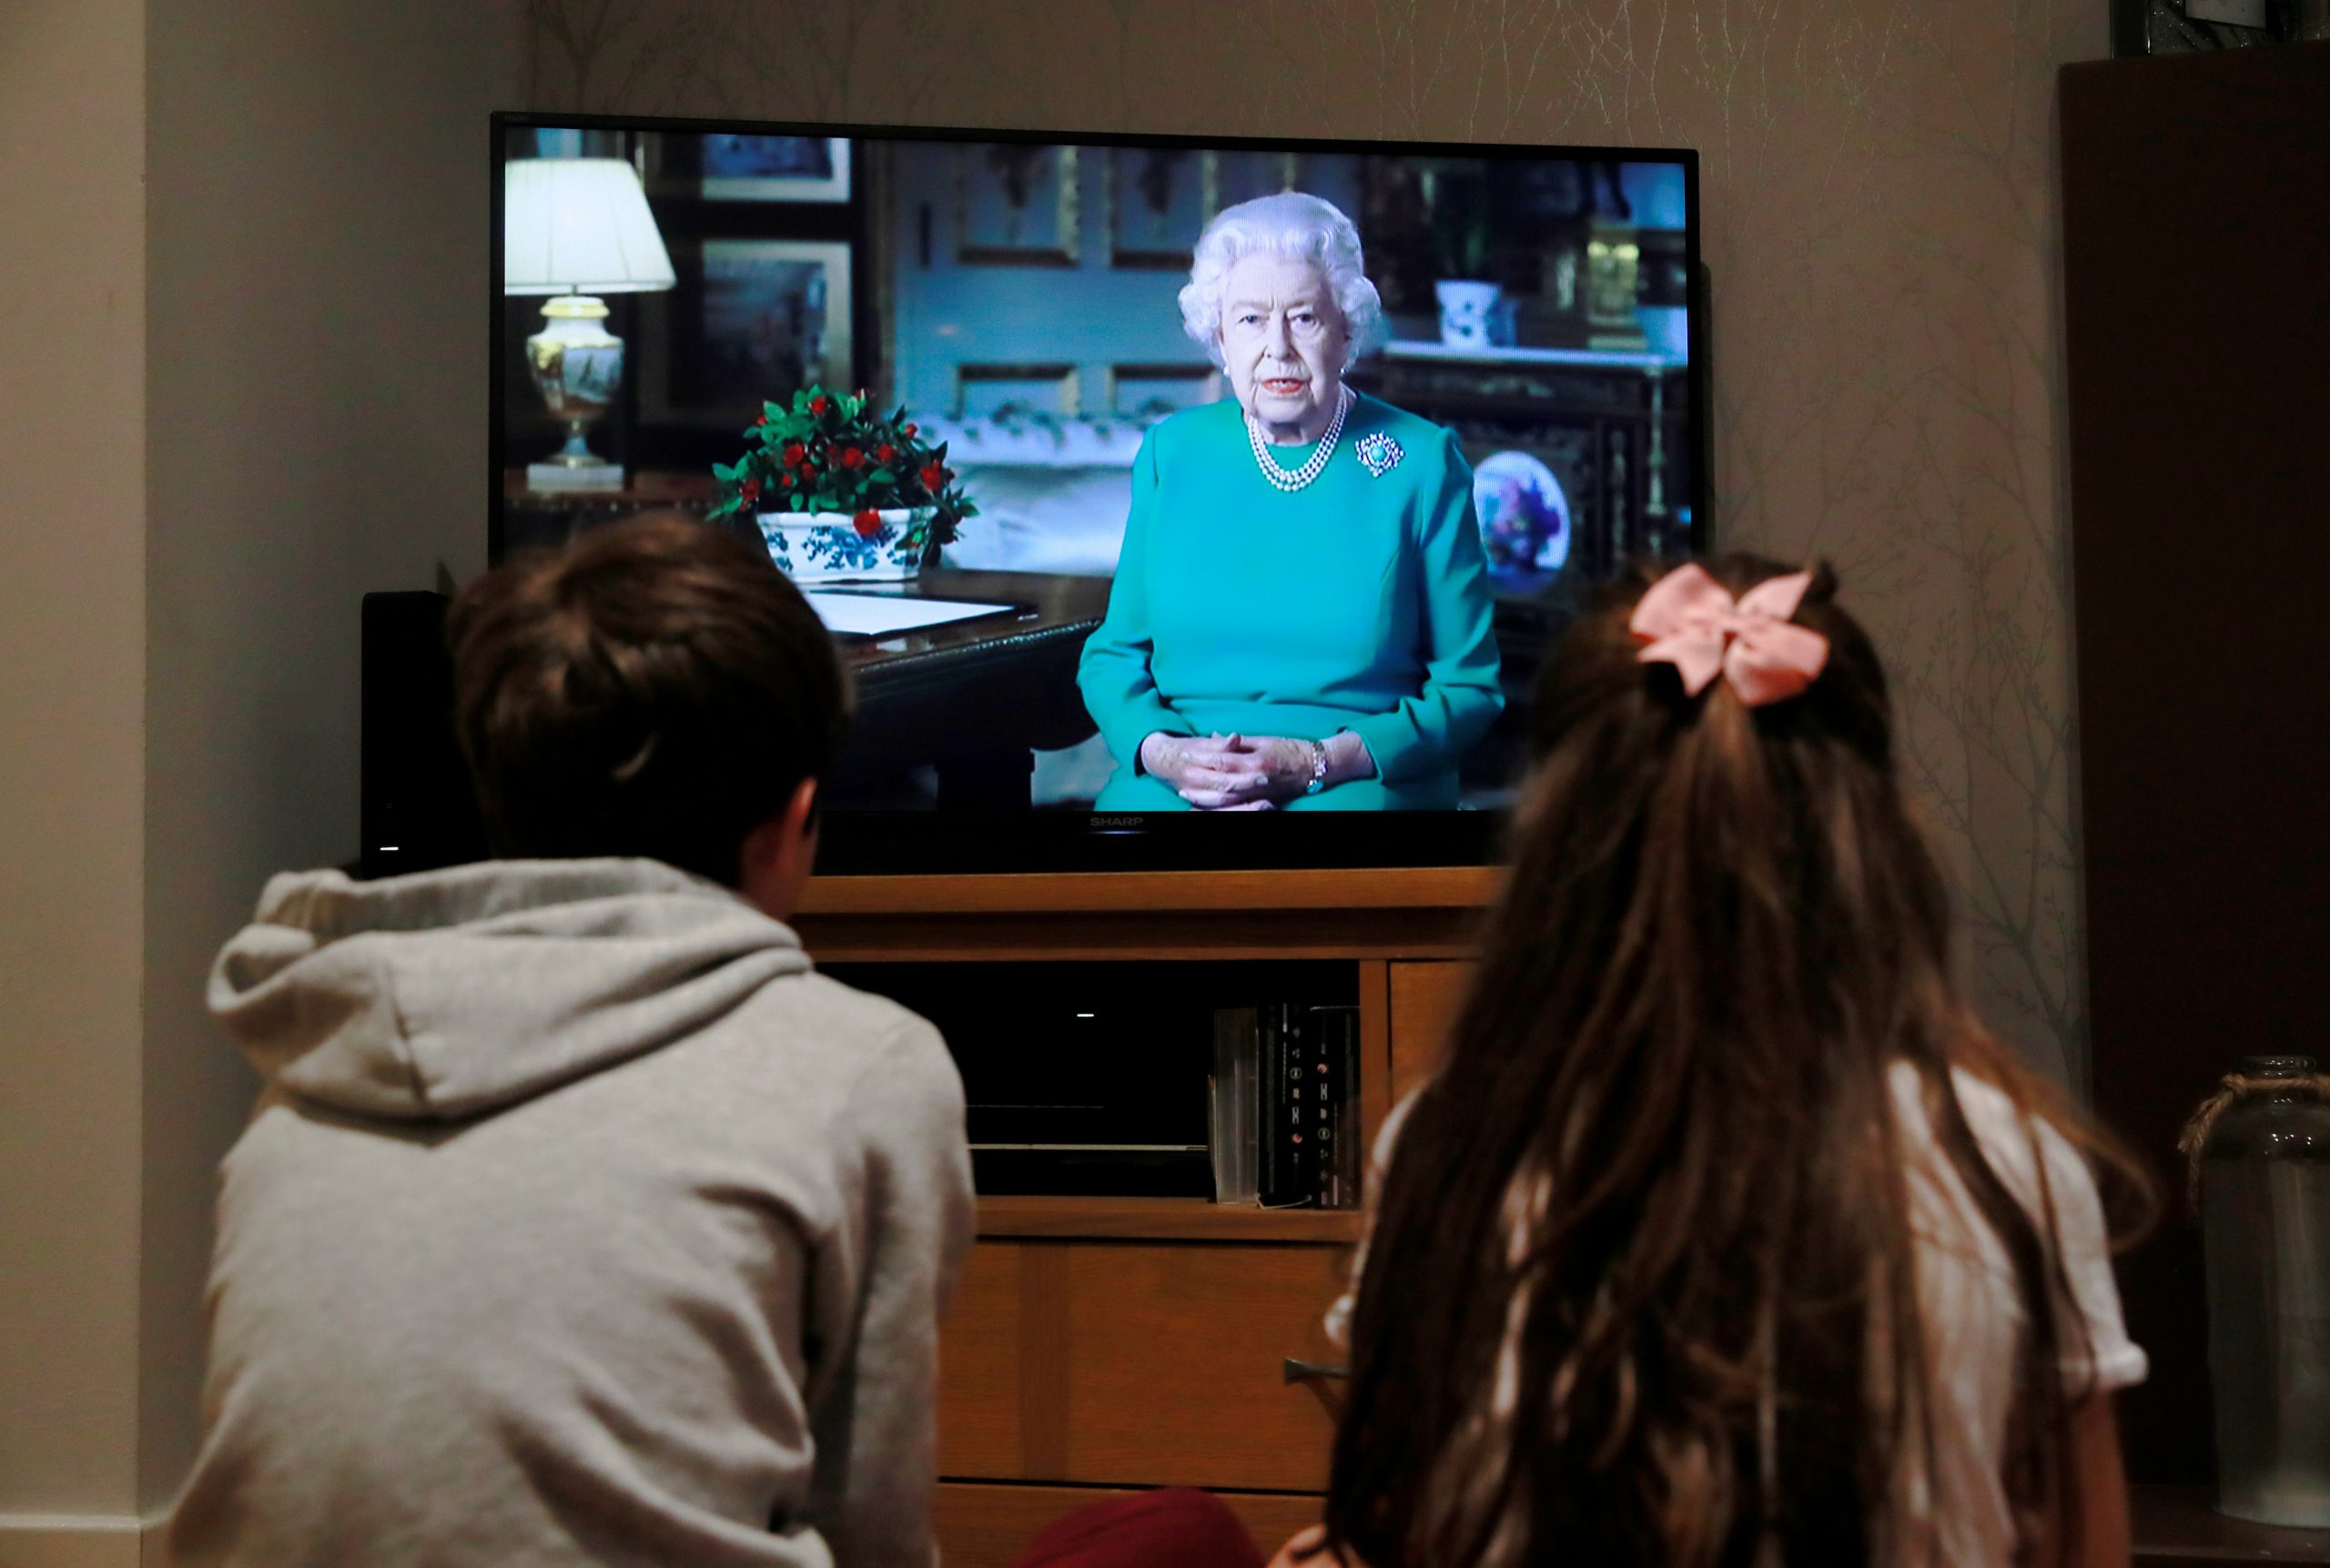 Noah (9) and Milly (7) watch Britain's Queen Elizabeth II during a televised address to the nation at their home, as the spread of the coronavirus disease (COVID-19) continues, Hertford, Britain, April 5, 2020. REUTERS/Andrew Couldridge